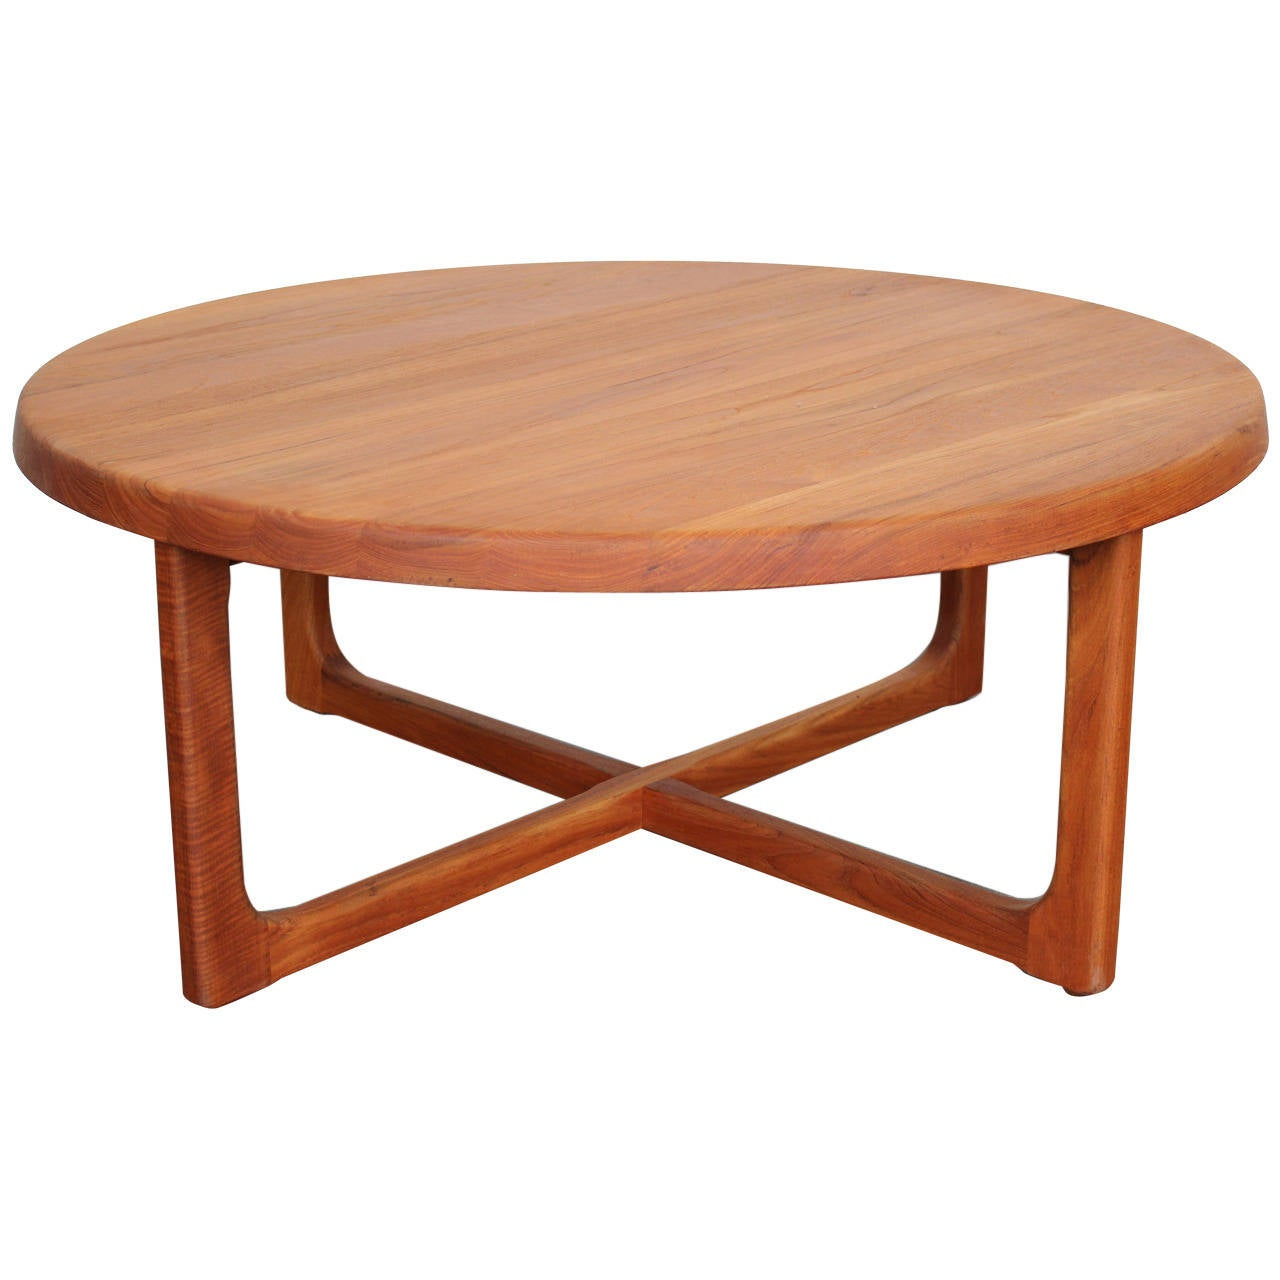 MidCentury Large Round Solid Teak Coffee Table at 1stdibs